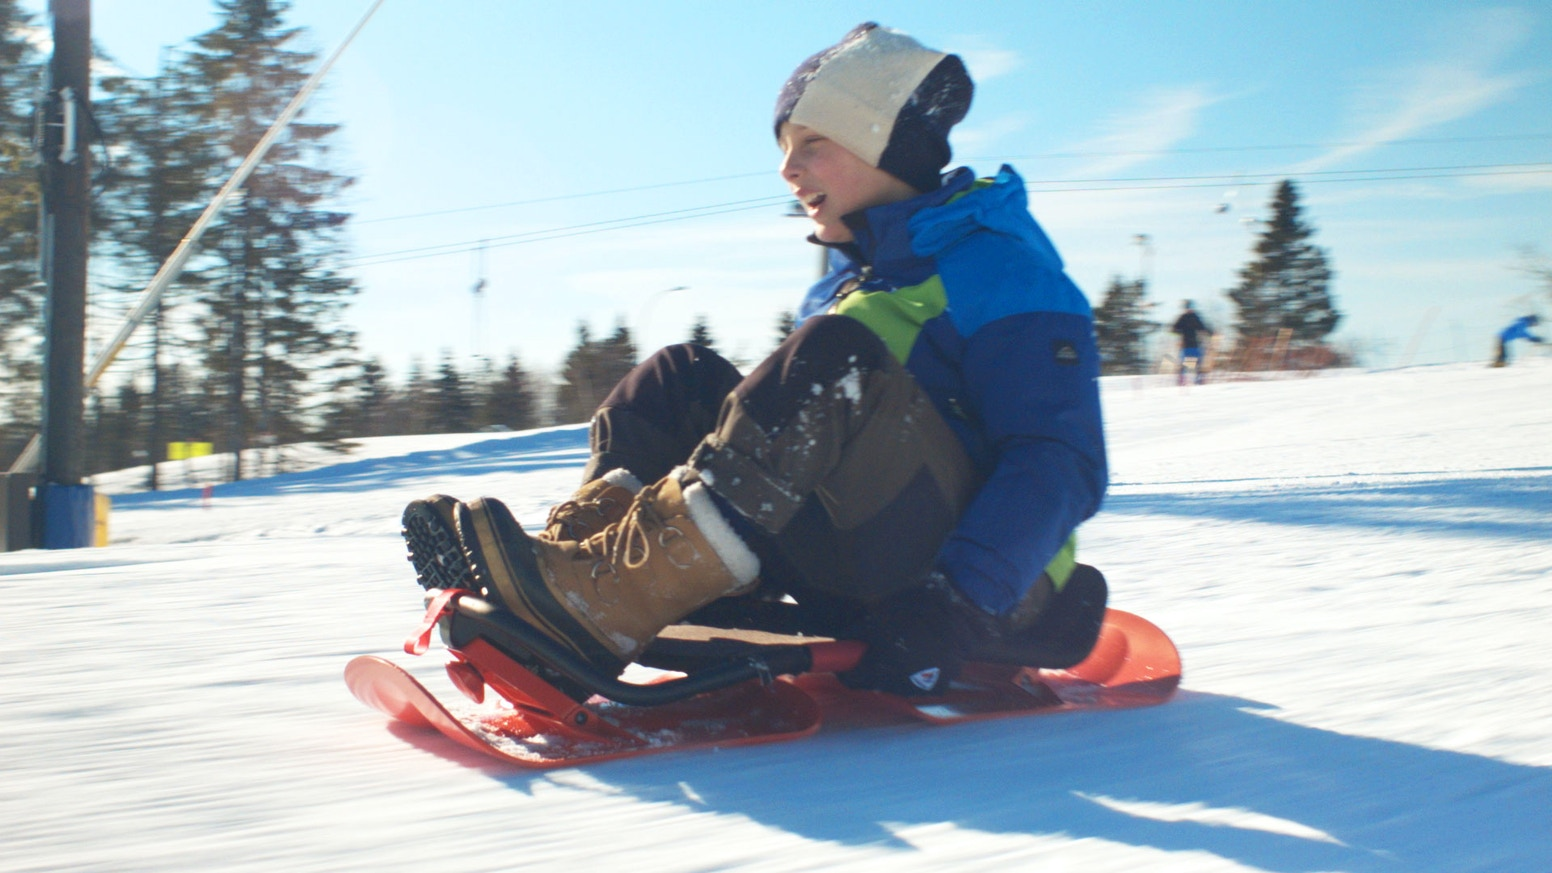 SnowBob is a revolutionary sled you actively and intuitively control by shifting your weight from side to side.